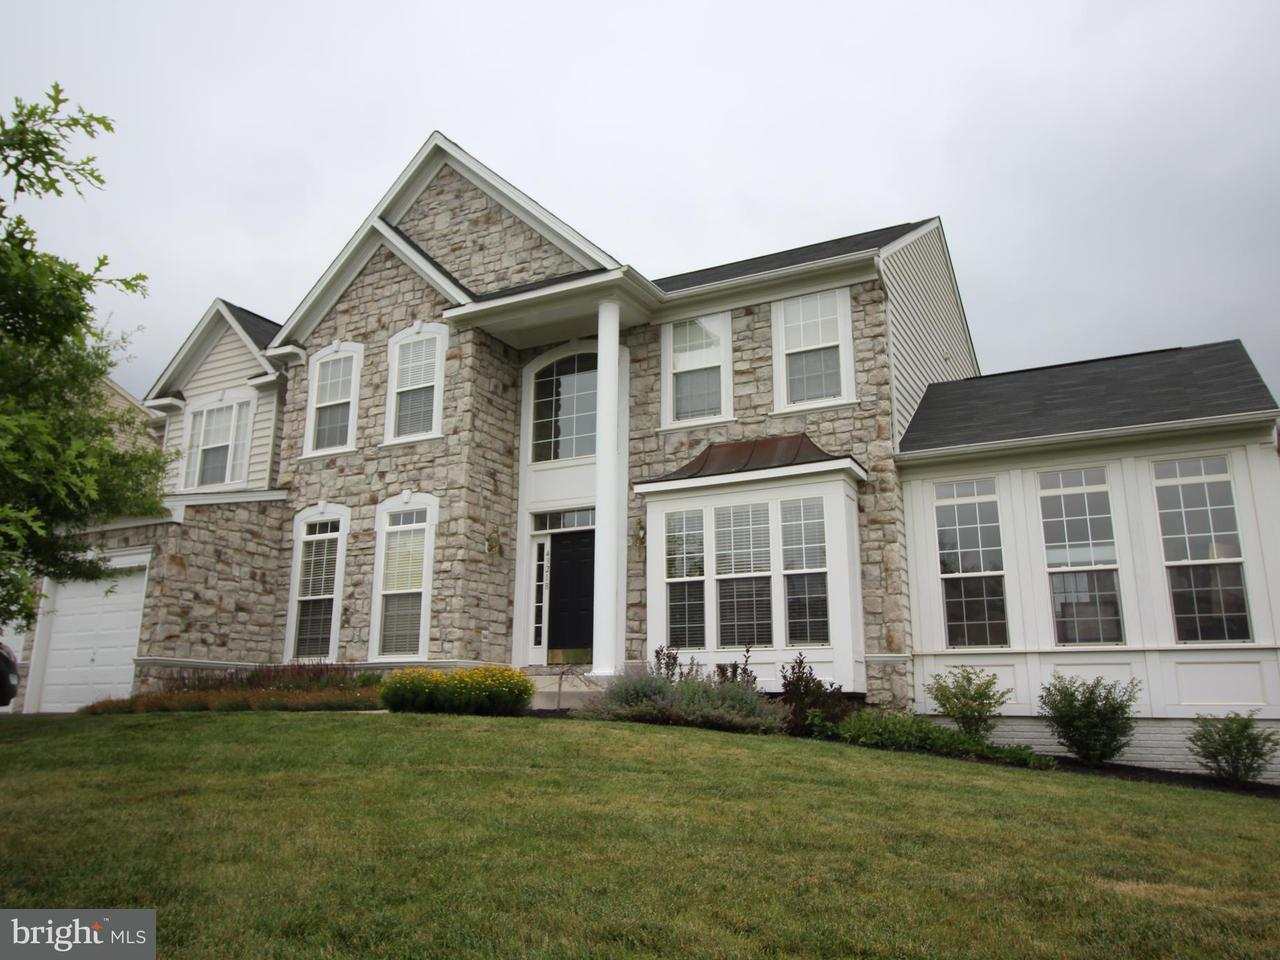 Single Family Home for Sale at 43218 SUMMERSWEET Place 43218 SUMMERSWEET Place Ashburn, Virginia 20148 United States